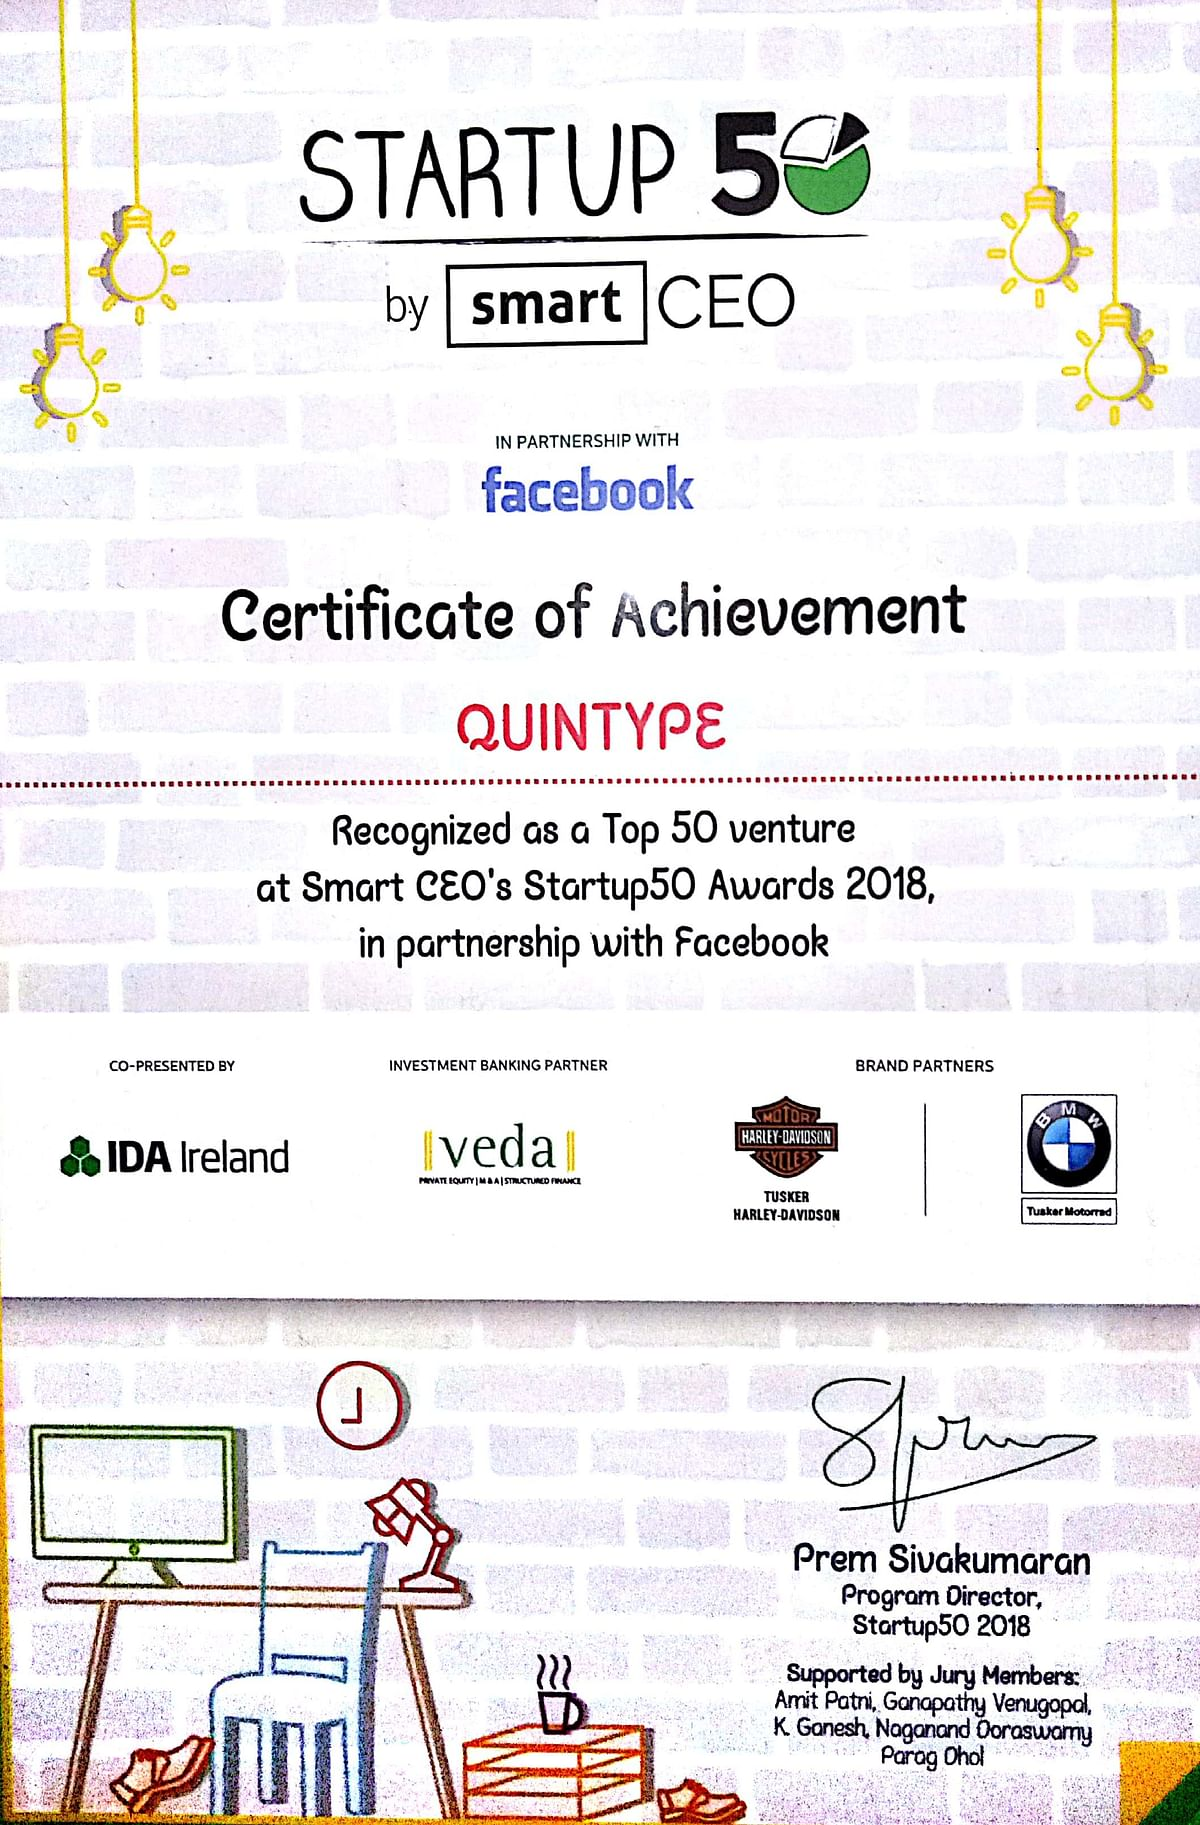 Recognition received by Quintype at the Startup50 Awards 2018 by Smart CEO